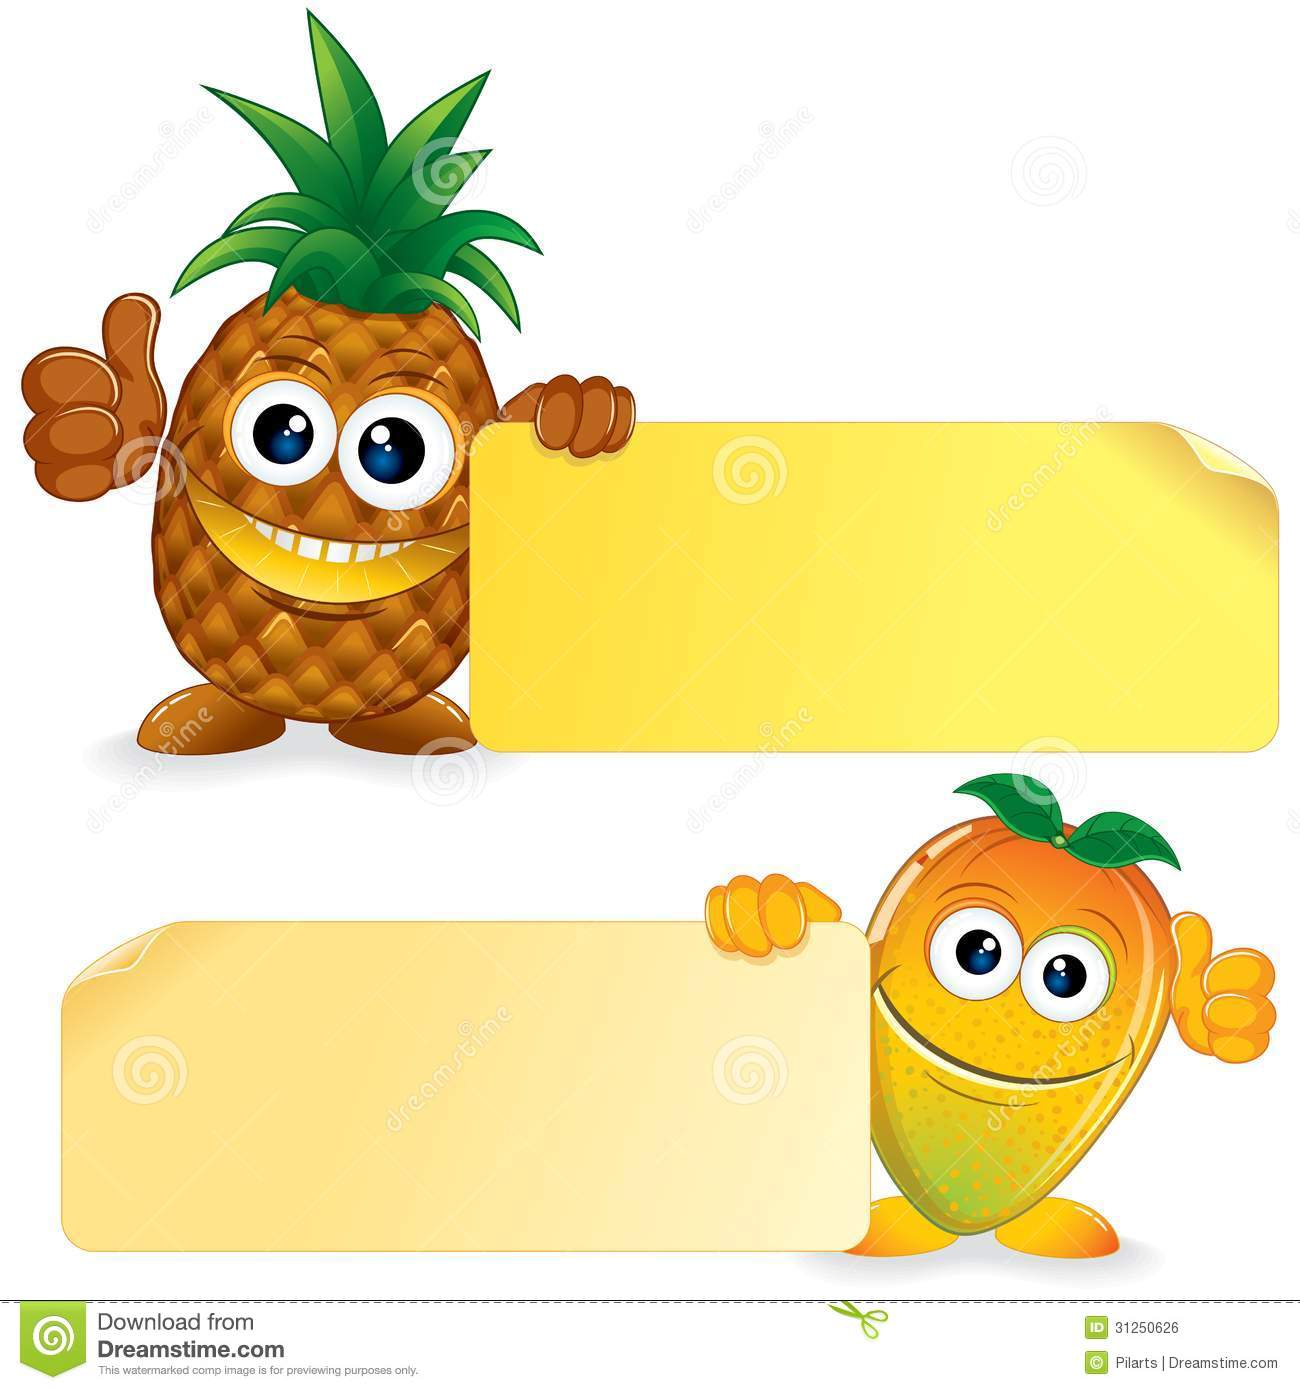 E8 B1 86 E8 85 90 further Tupac Month Tony Danza Talks About His Relationship With Pac additionally Royalty Free Stock Image Pineapple Mango Vector Cartoon Illustration Honey Funny Fruits Blank Sign Image31250626 moreover New Fnaf Ocs 521220737 further Clipart 23446. on mango cartoon character